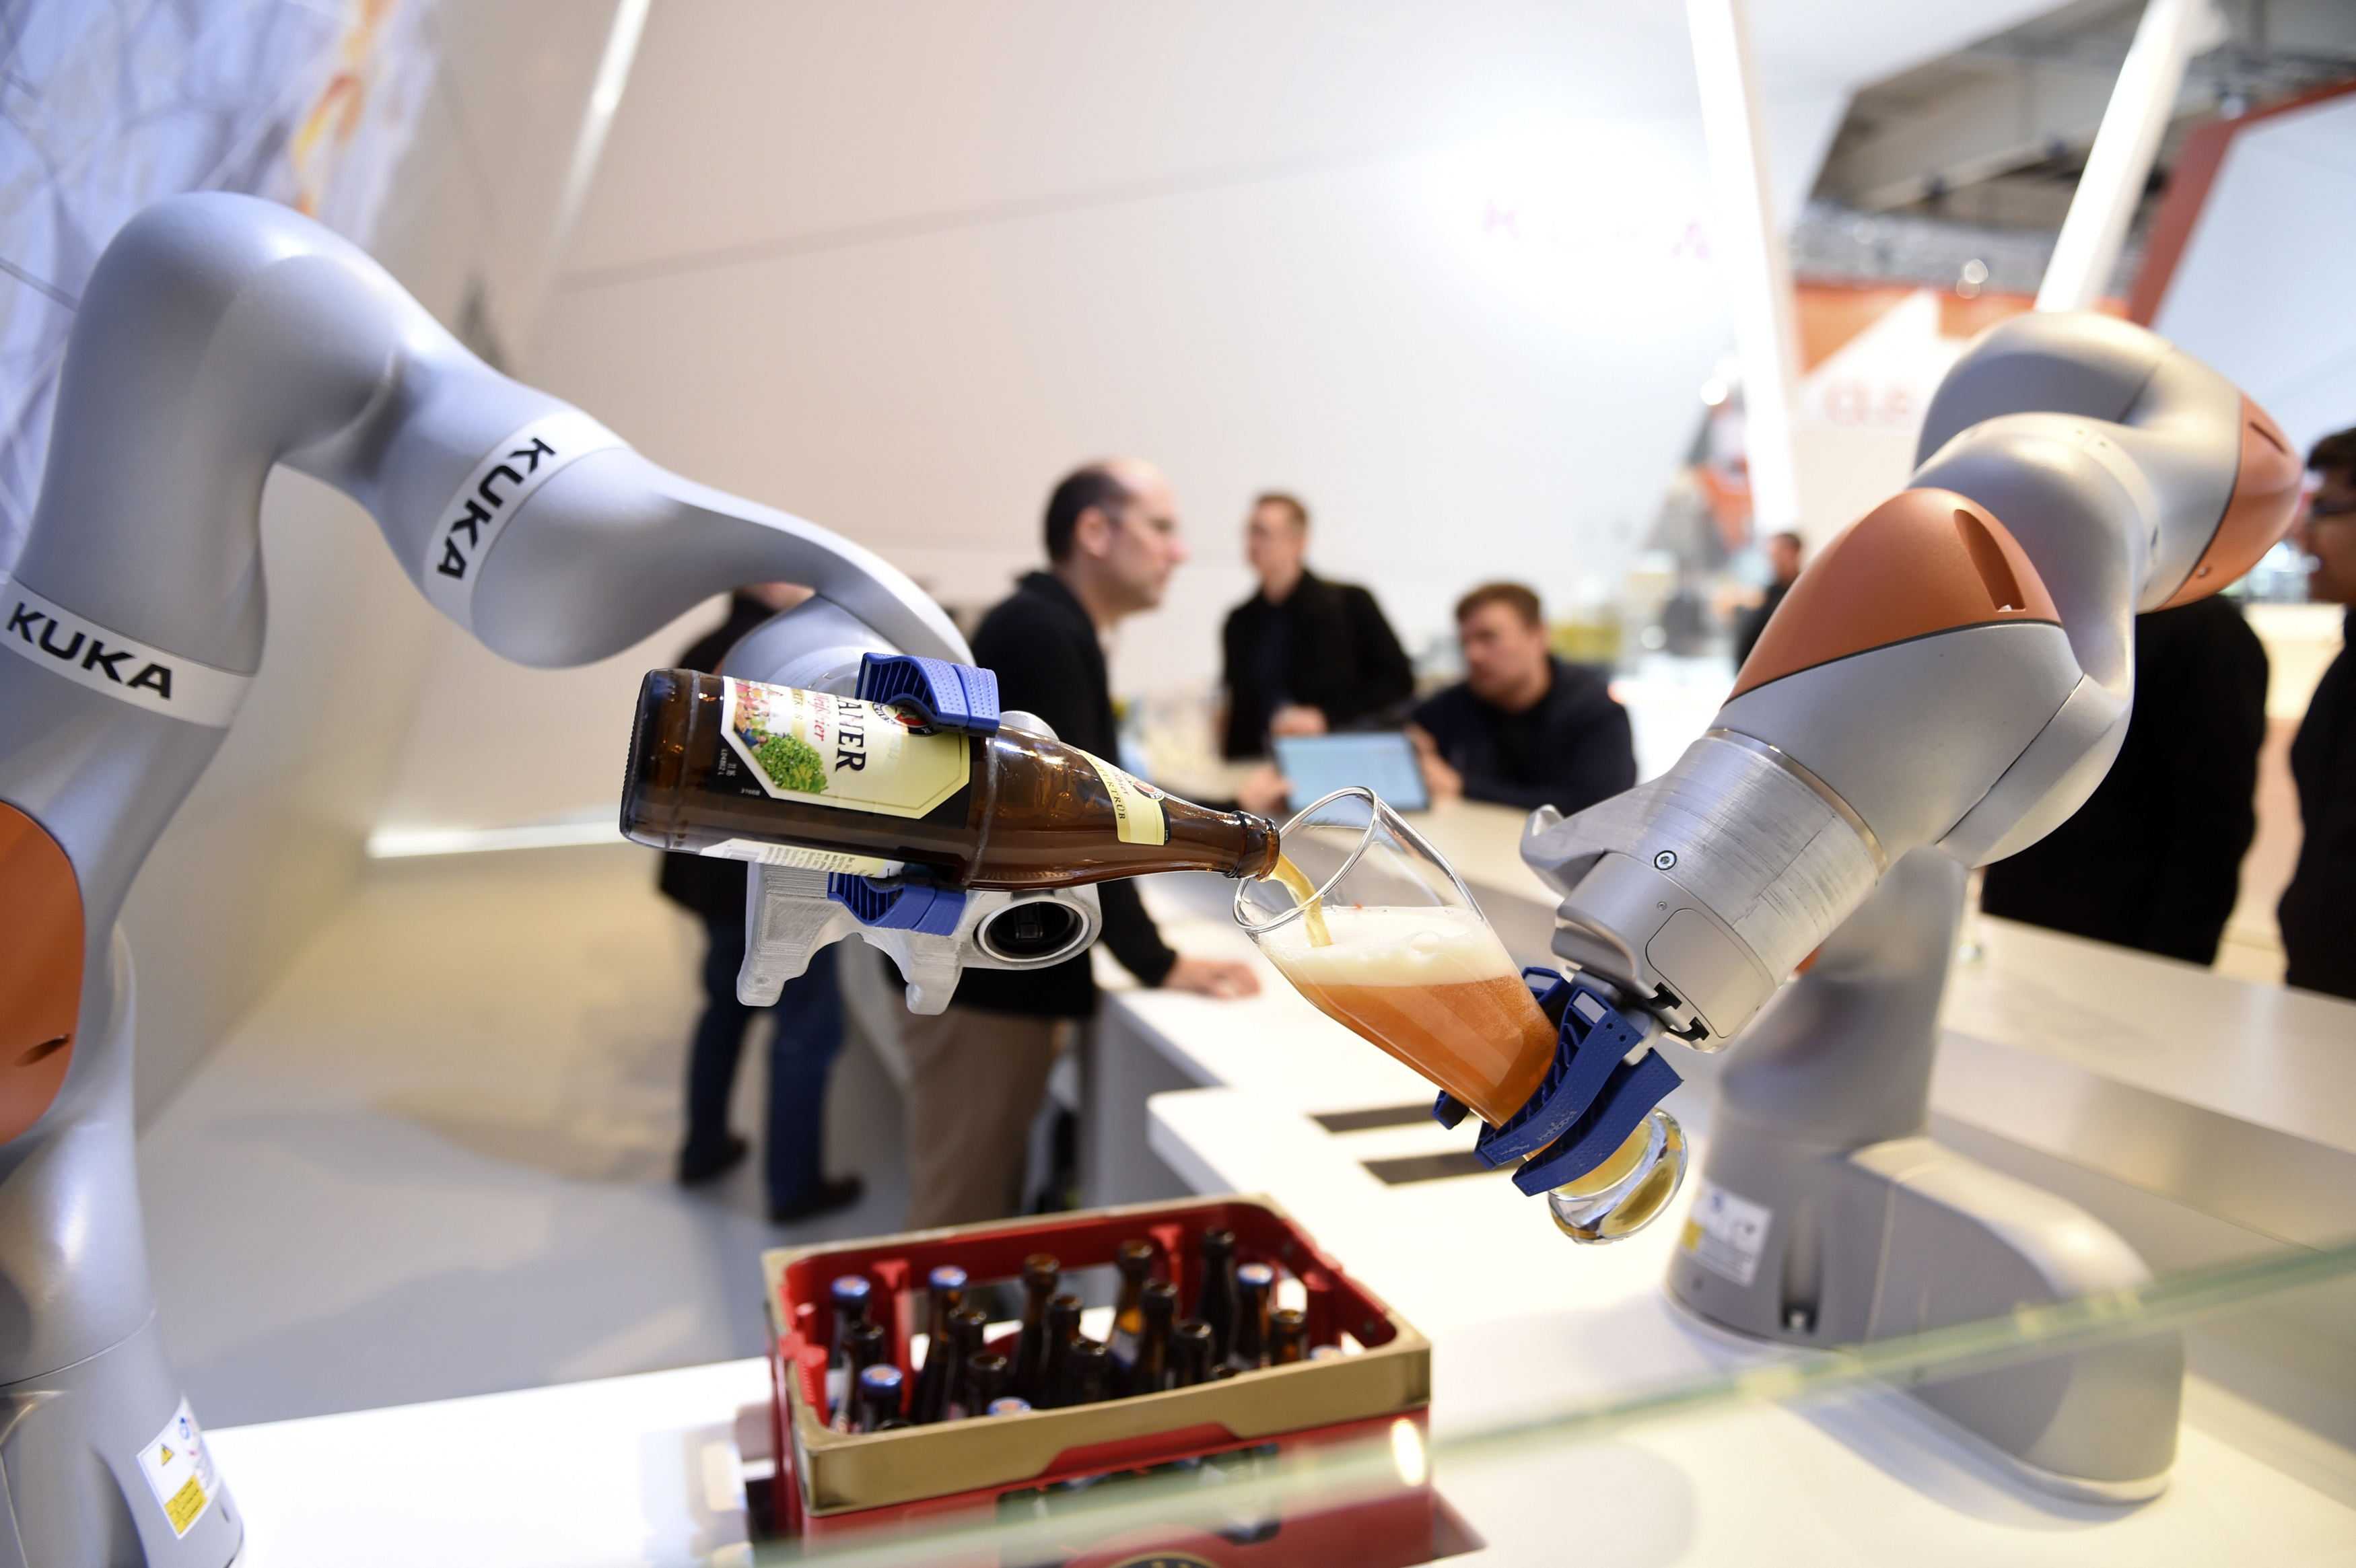 Robots in the Kuka stand pour a beer into a glass at the Hannover Messe industrial trade fair in Hanover